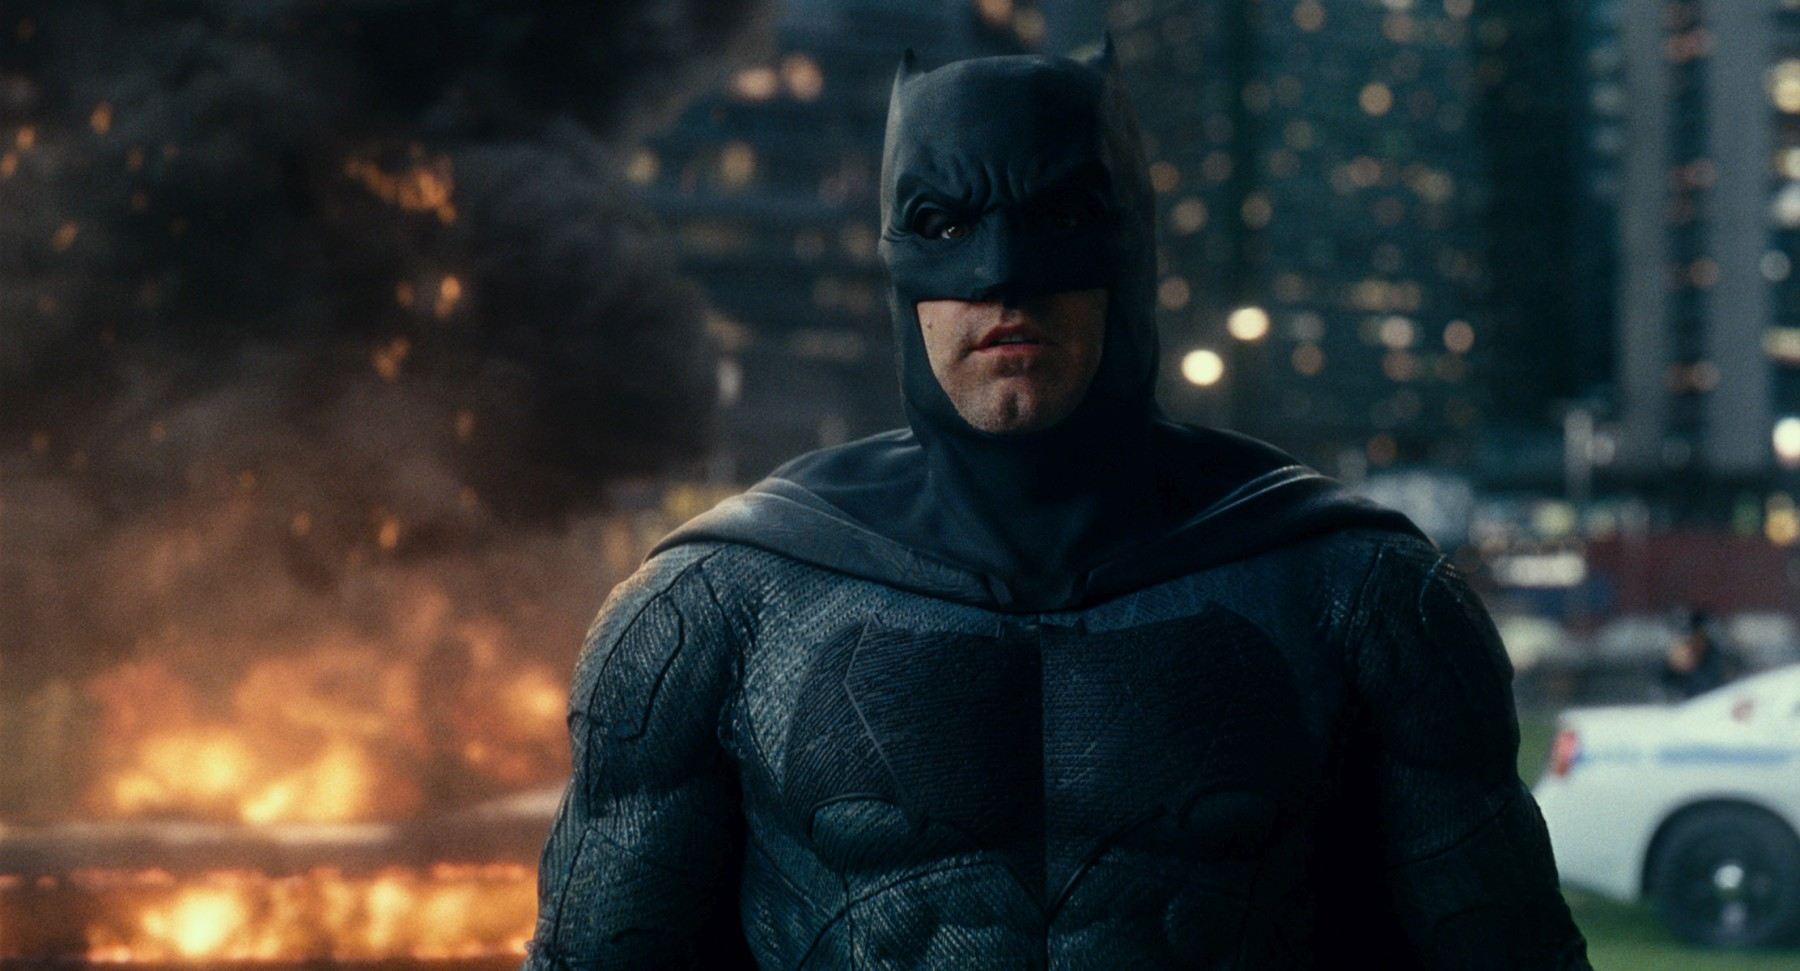 Ben Affleck On How Batman Has Changed In 'Justice League'